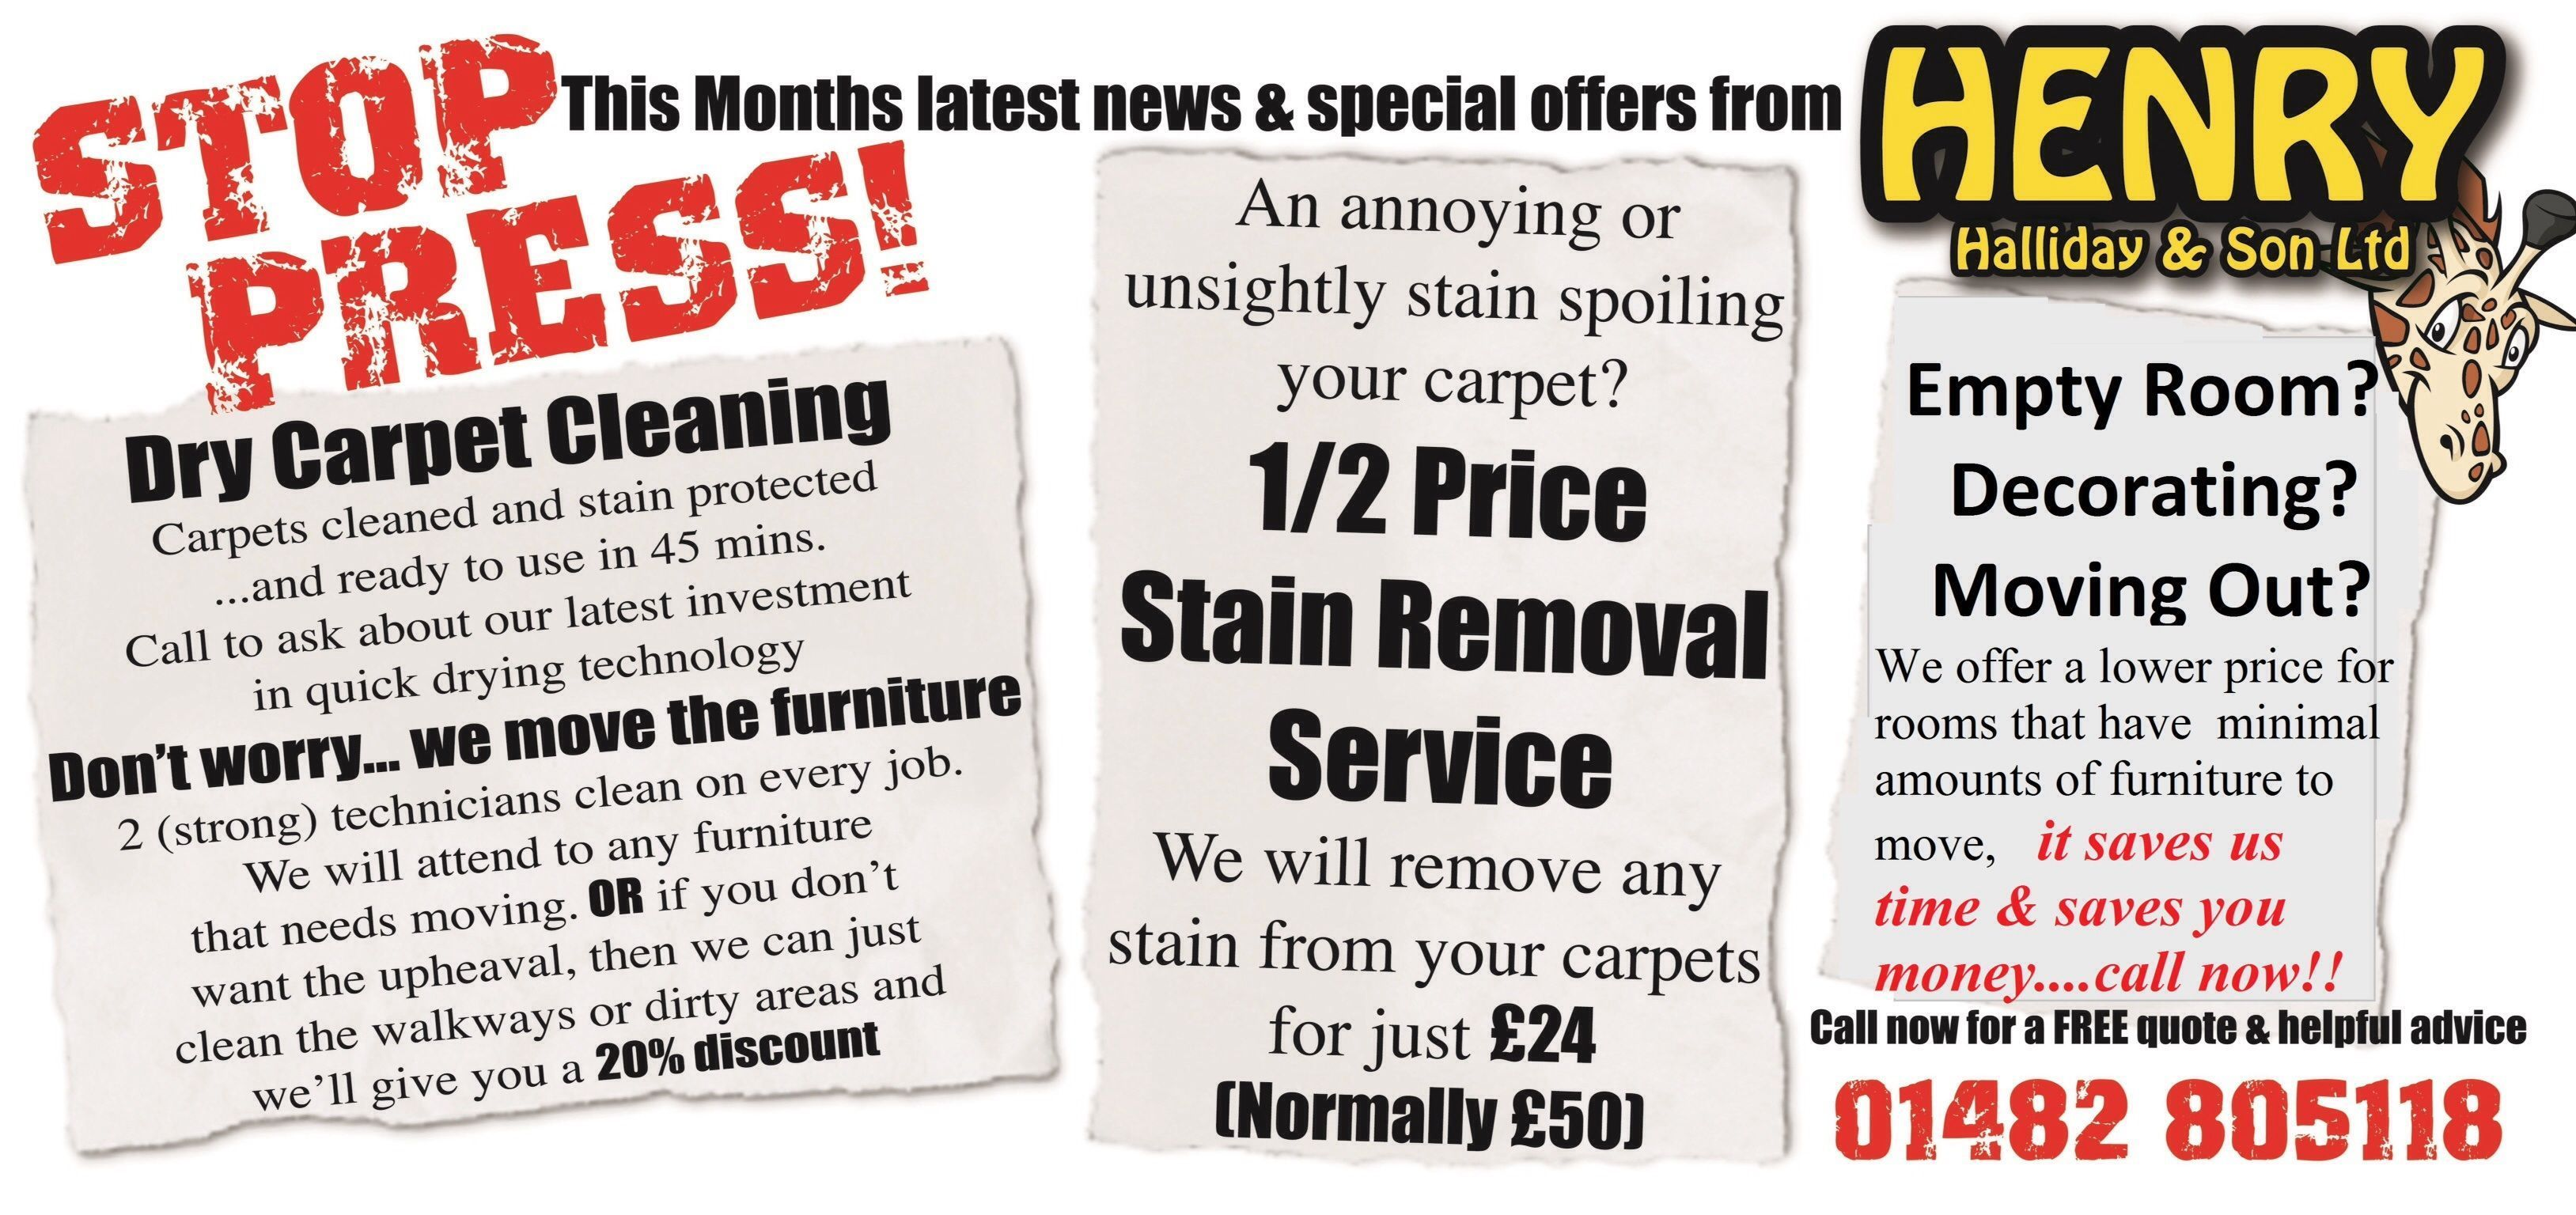 carpet cleaning leaflet carcarpetcleaningitworks upholsteryideaschair